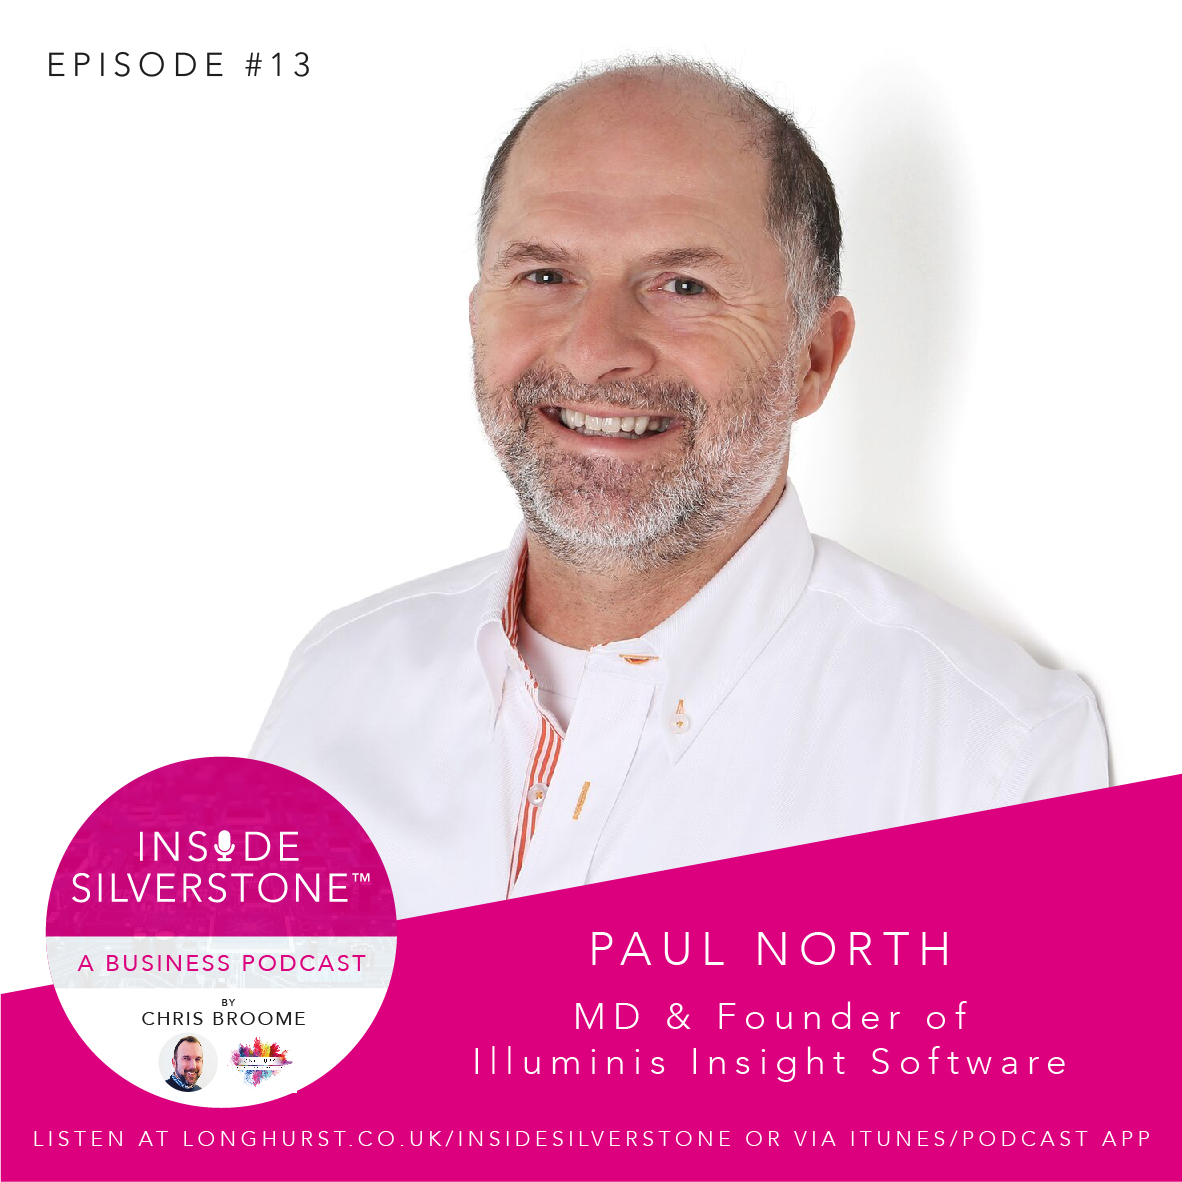 Paul North, MD & Founder of Illuminis Insight Software